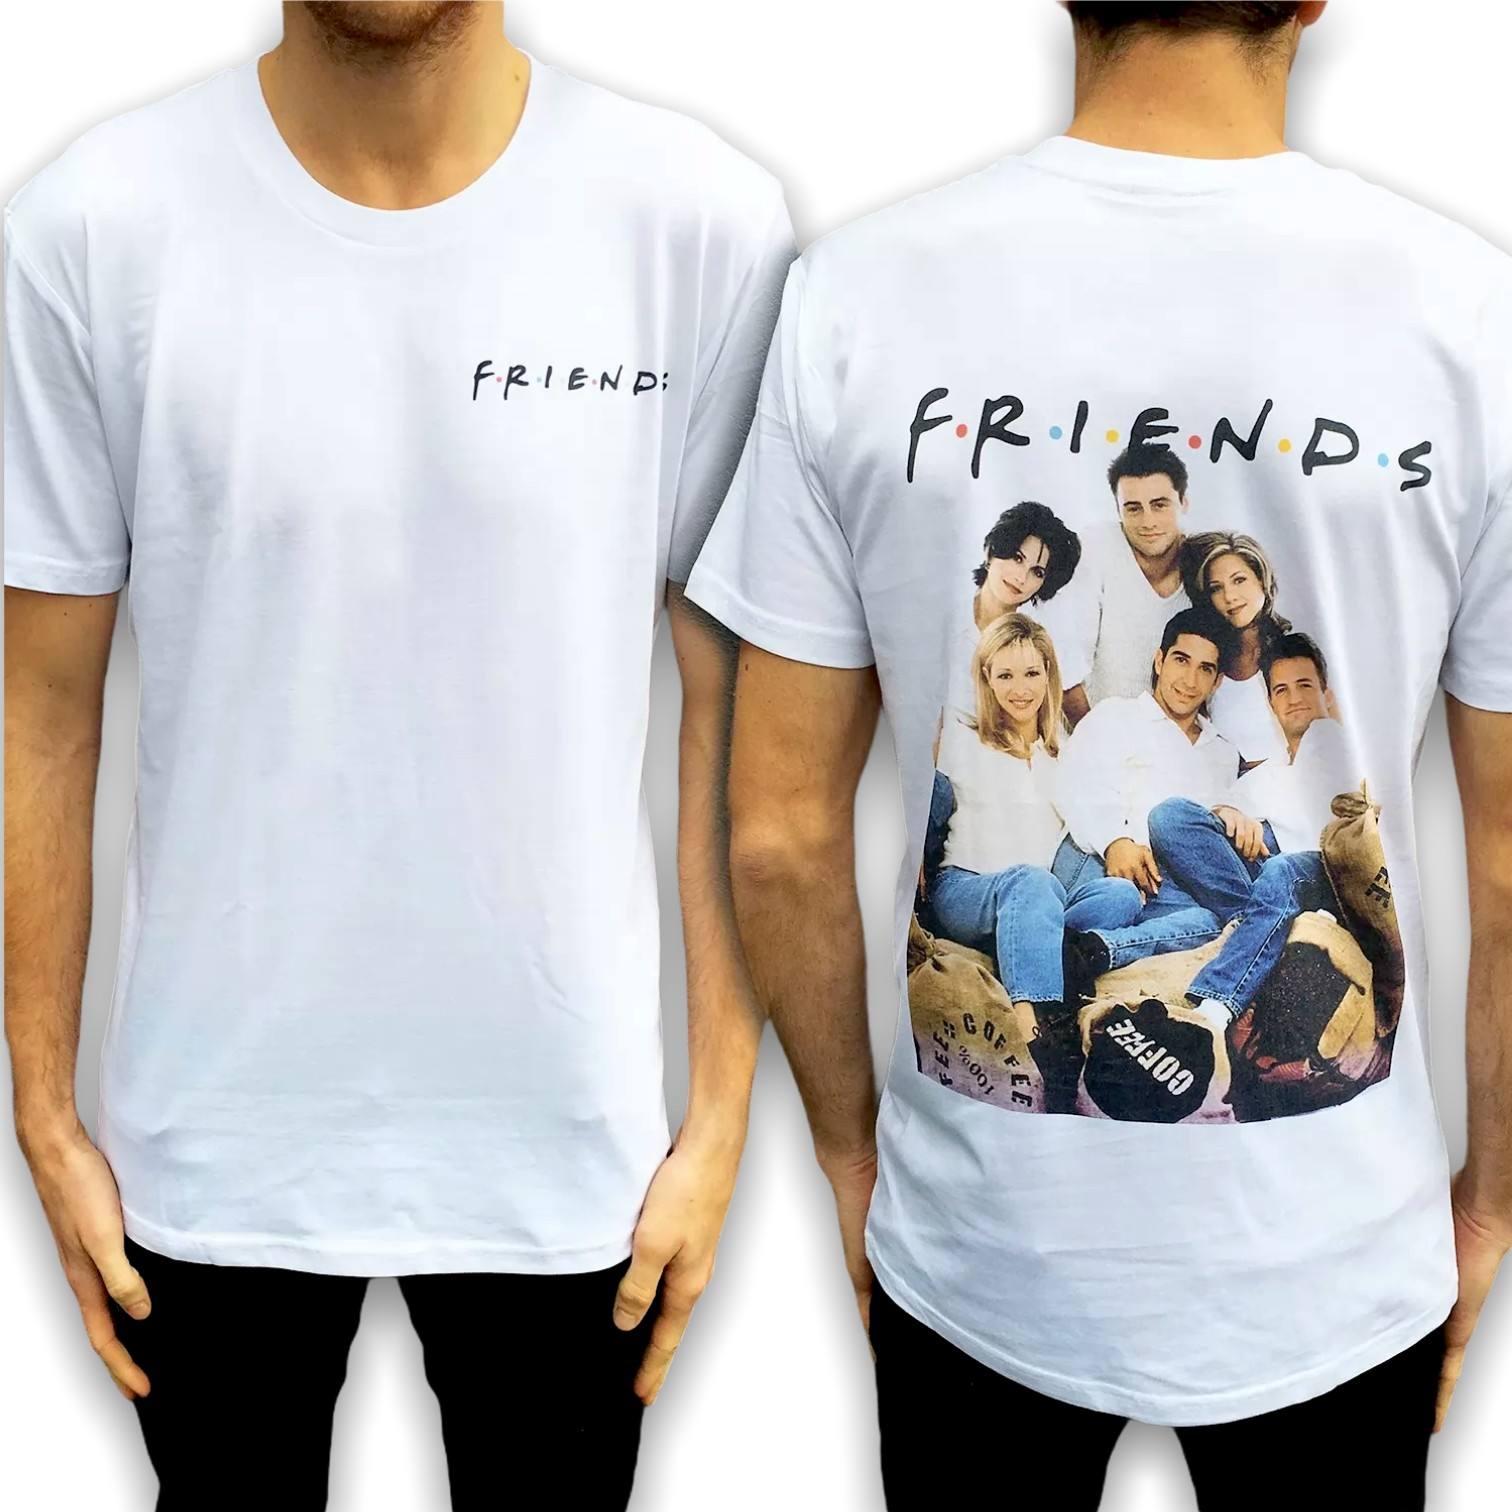 FRIENDS FRONT AND BACK TEE